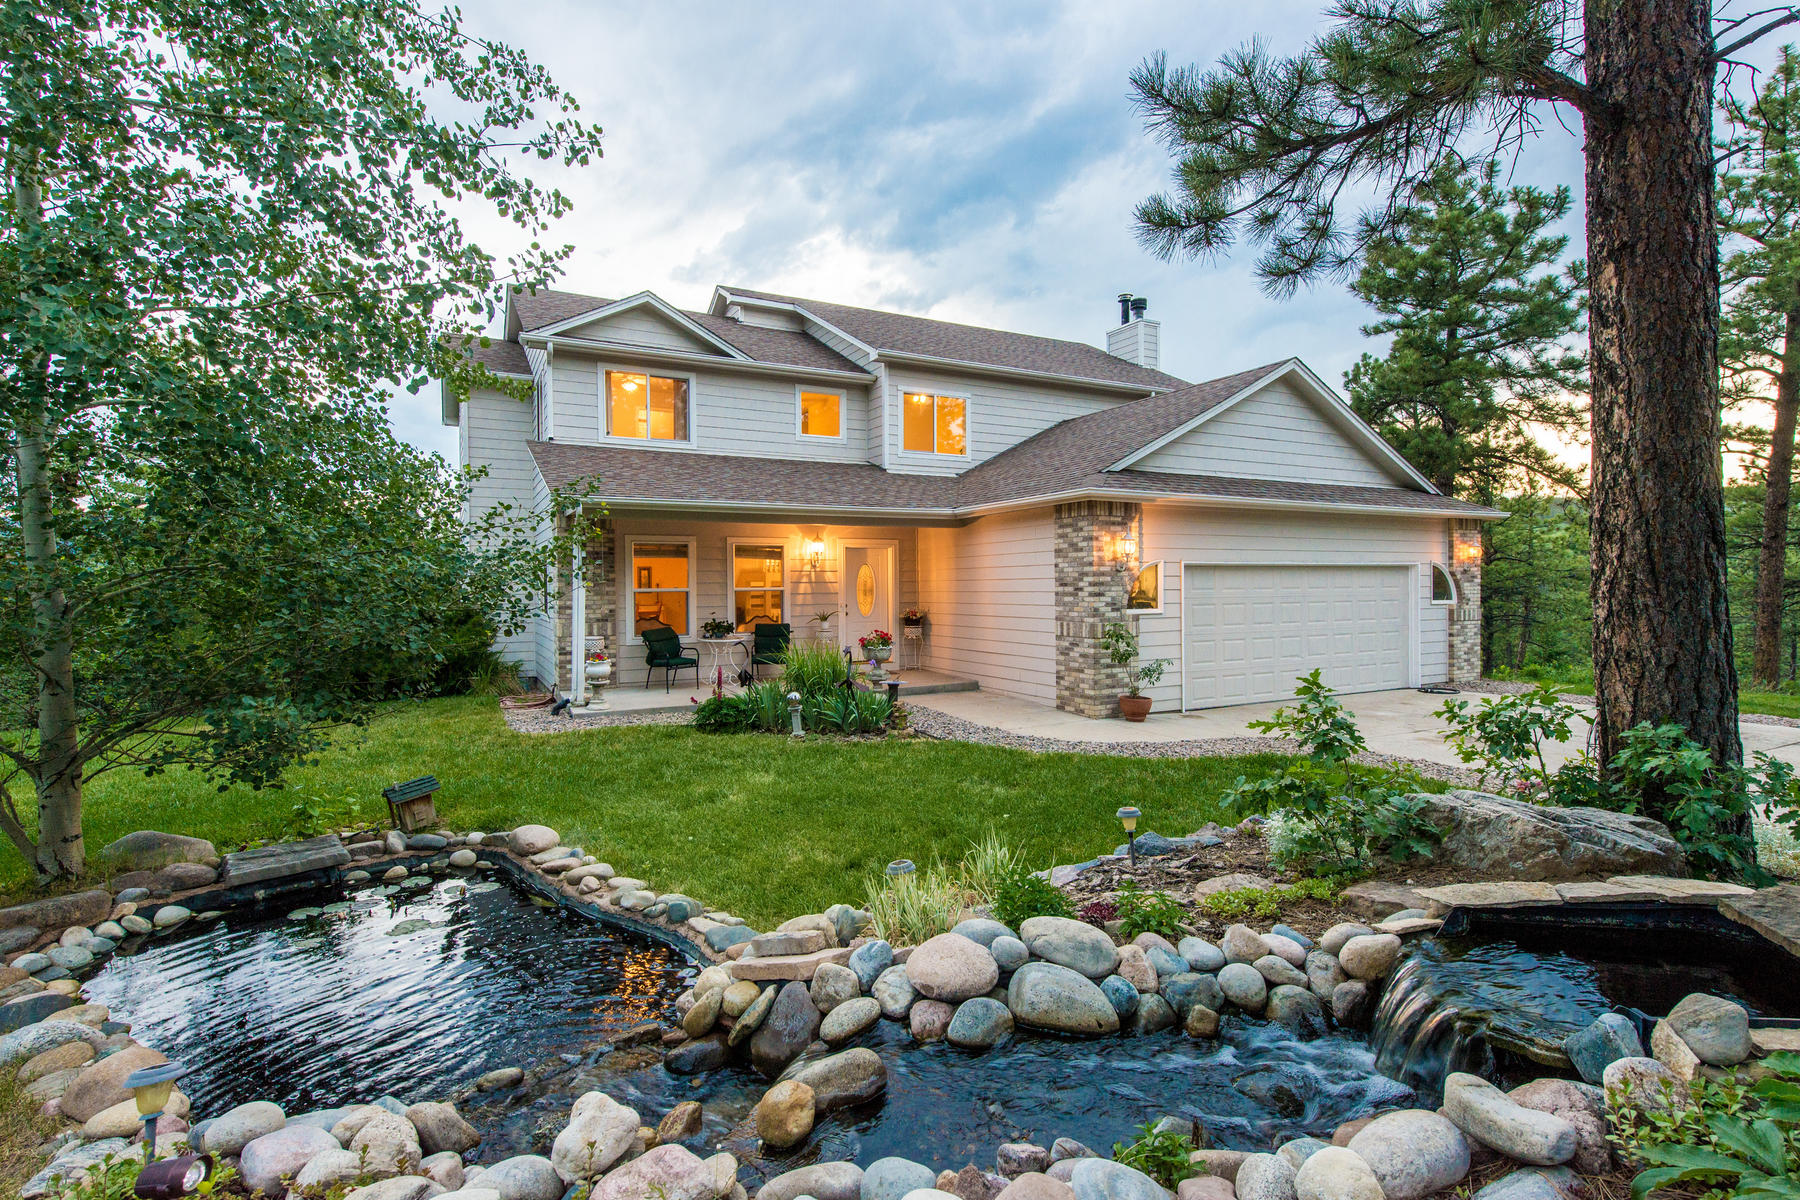 Single Family Home for Active at True Mountain Retreat 8808 South Murphy Gulch Road Littleton, Colorado 80127 United States